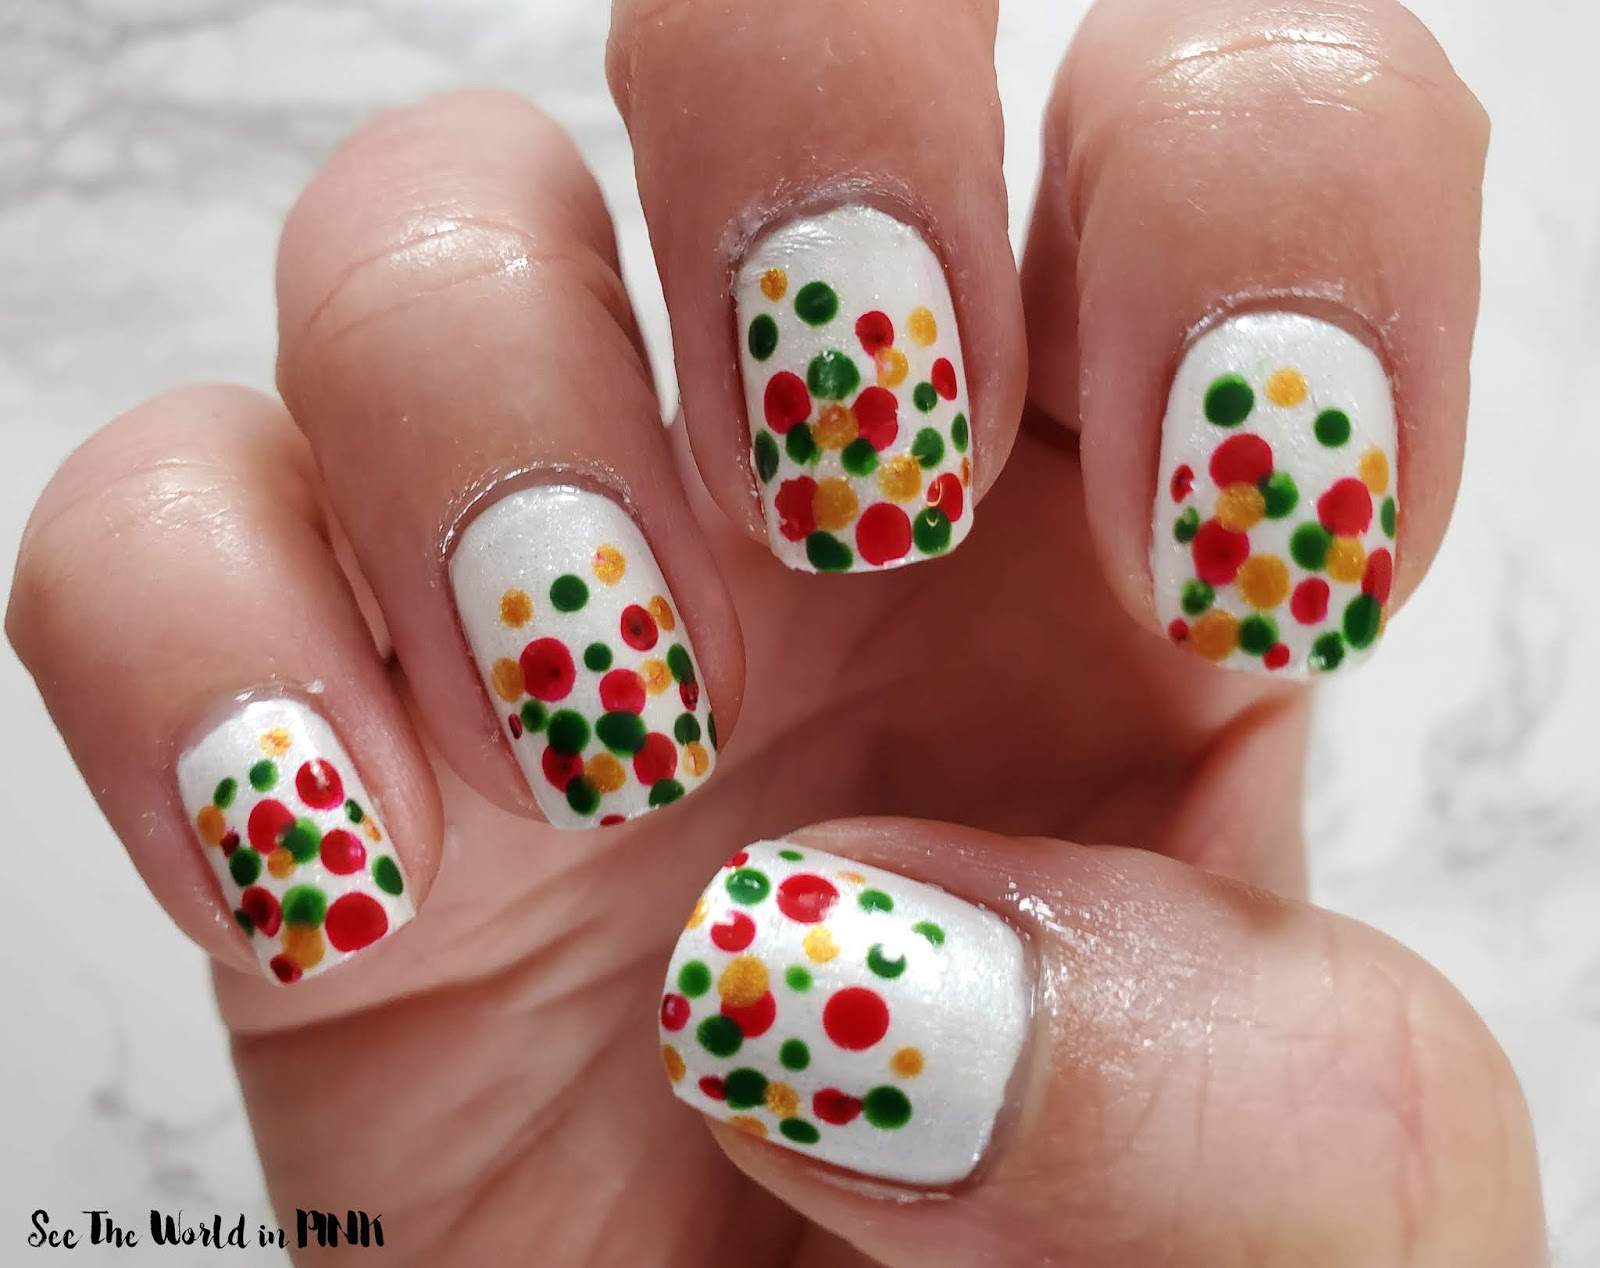 Manicure Monday - Holiday Dotticure Nails